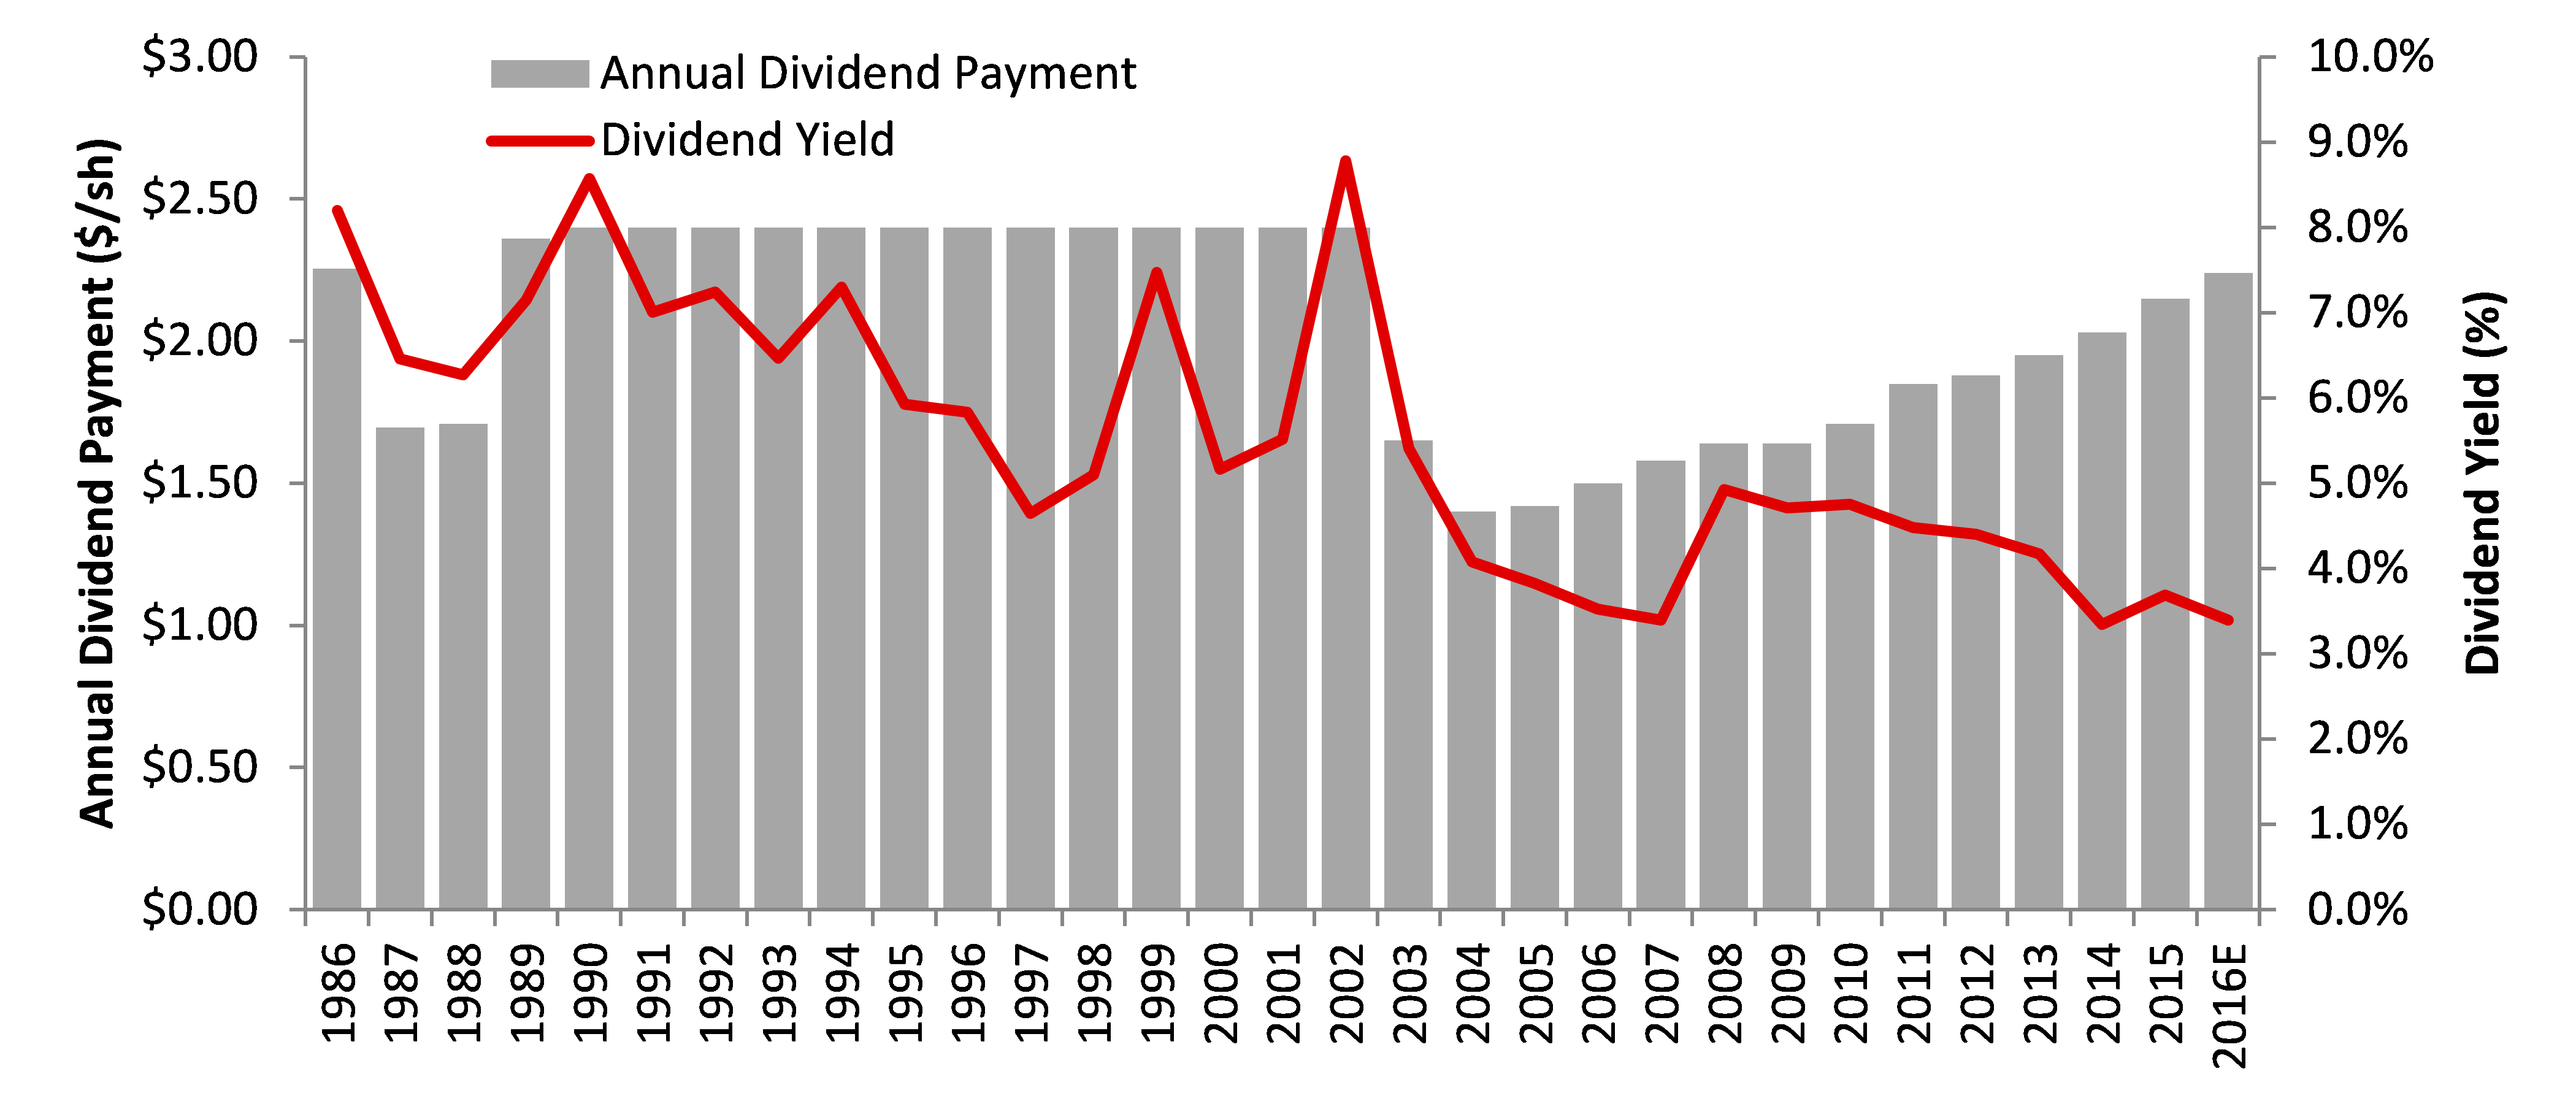 American Electric Power Company dividend history